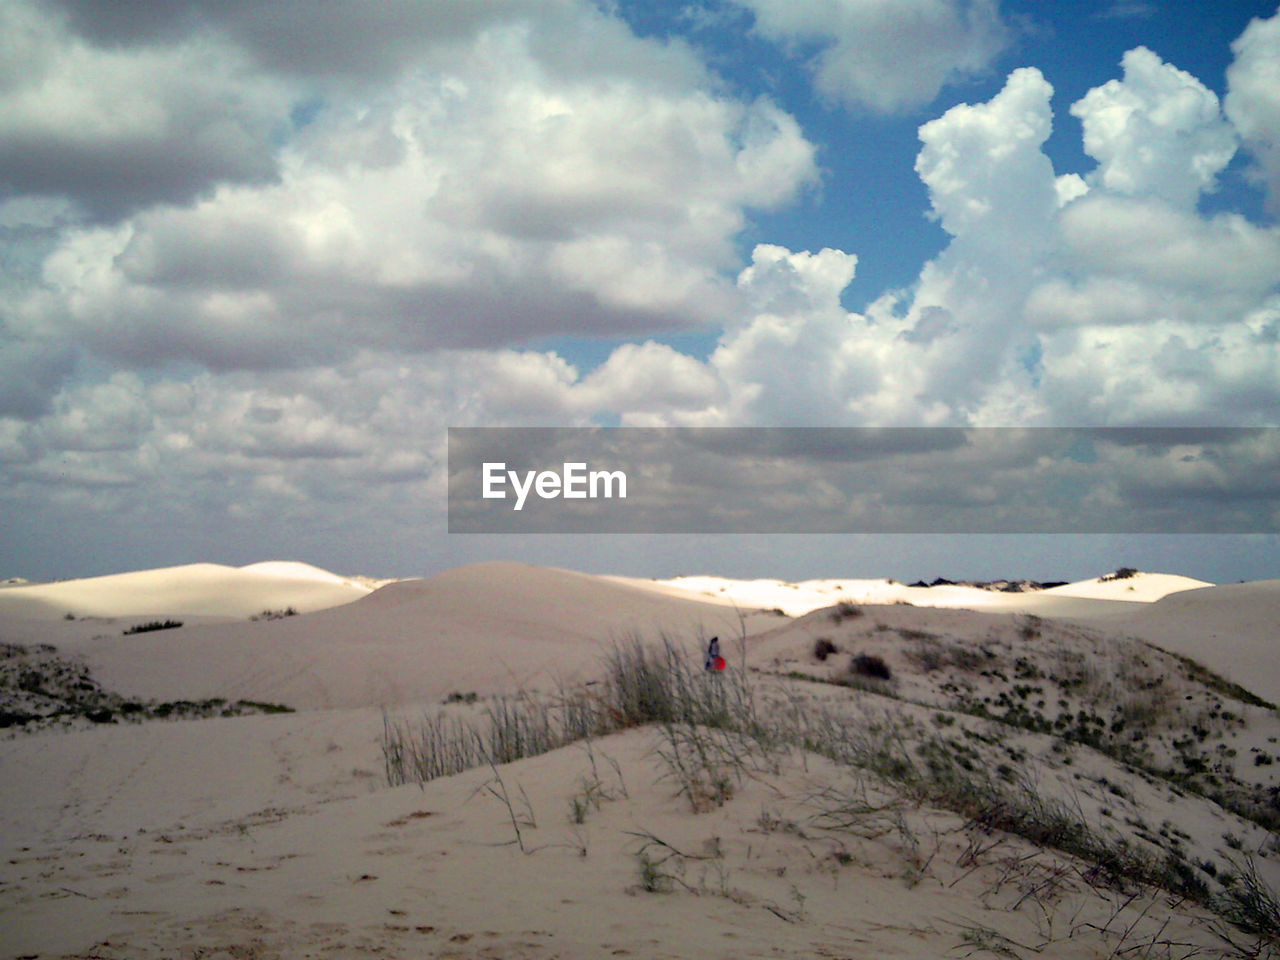 nature, sky, tranquility, scenics, cloud - sky, beauty in nature, landscape, tranquil scene, outdoors, snow, winter, day, cold temperature, mountain, no people, sand dune